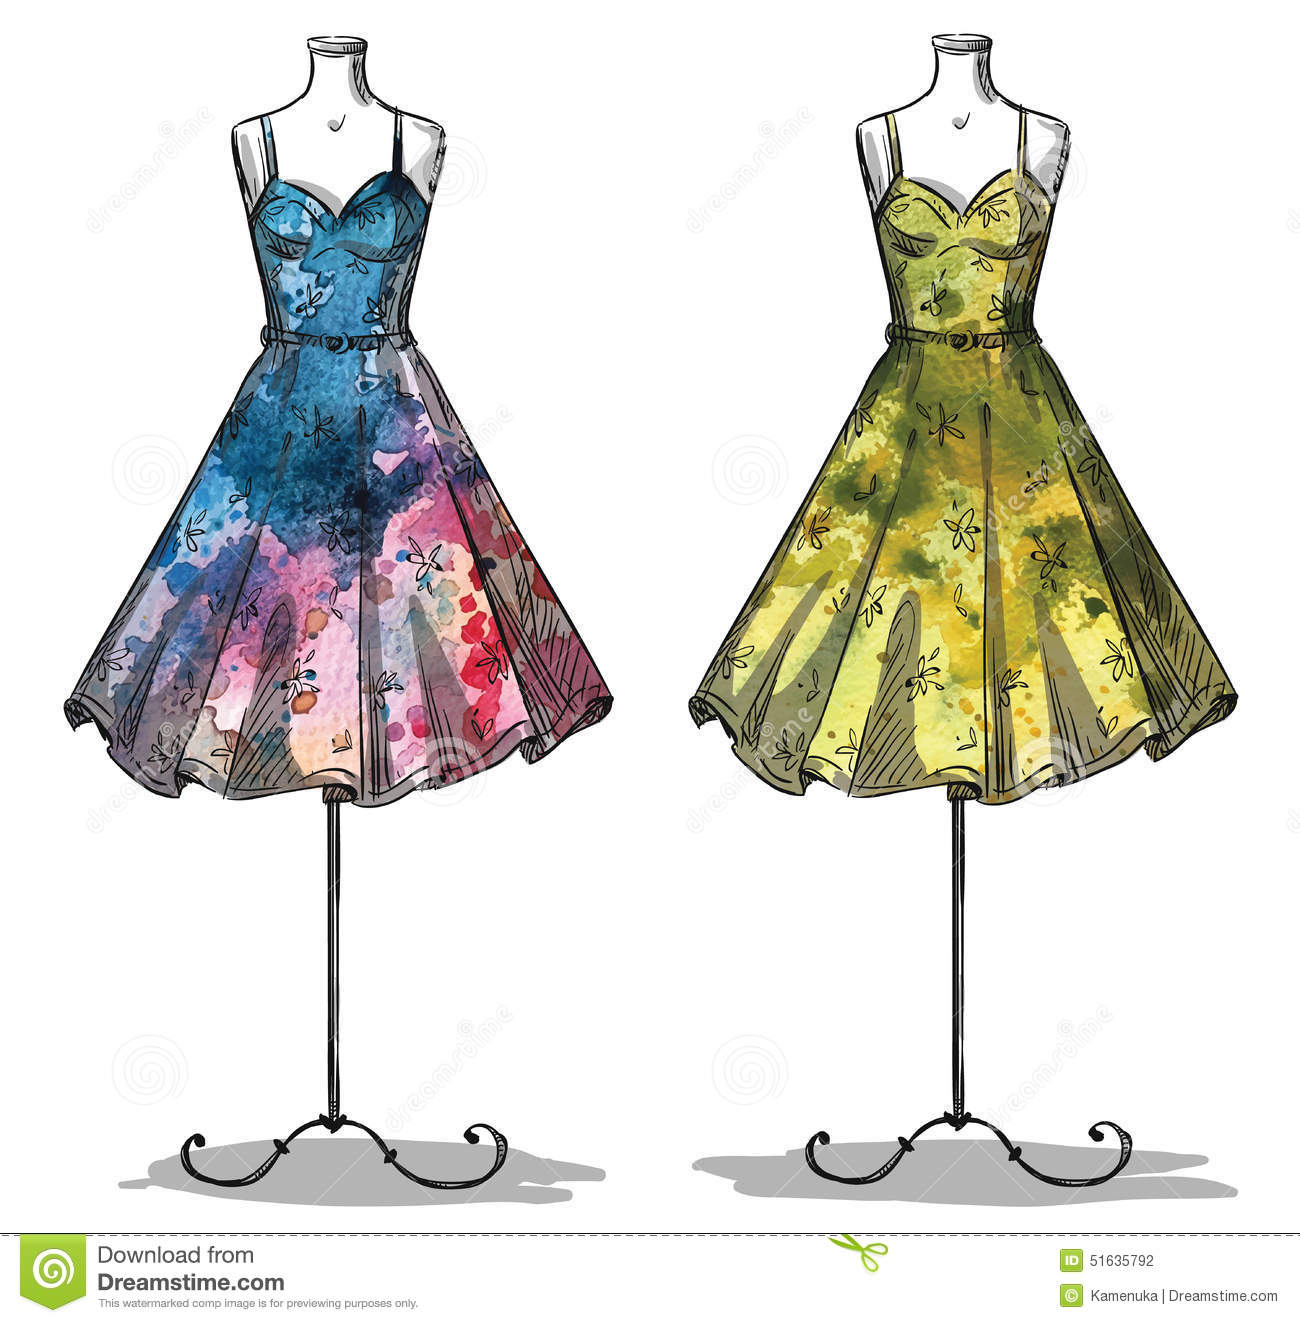 dummies with dresses fashion illustration stock vector